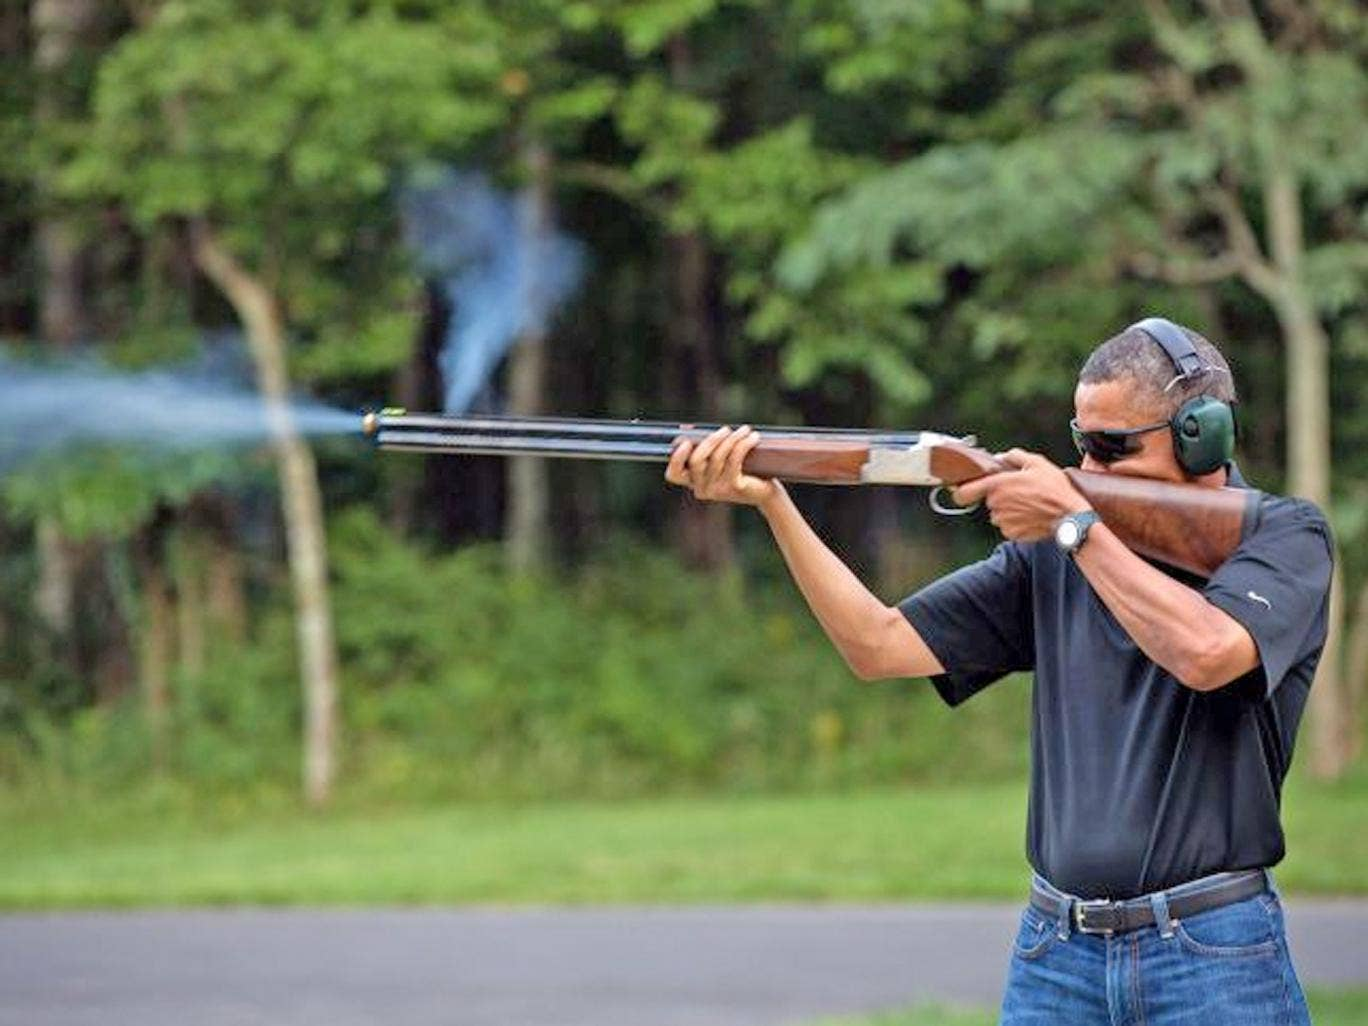 President Barack Obama shoots clay targets with a shotgun on the range at Camp David, Maryland. Obama has put forth great effort to pass legislation to ban assault rifles in the wake of the Newtown